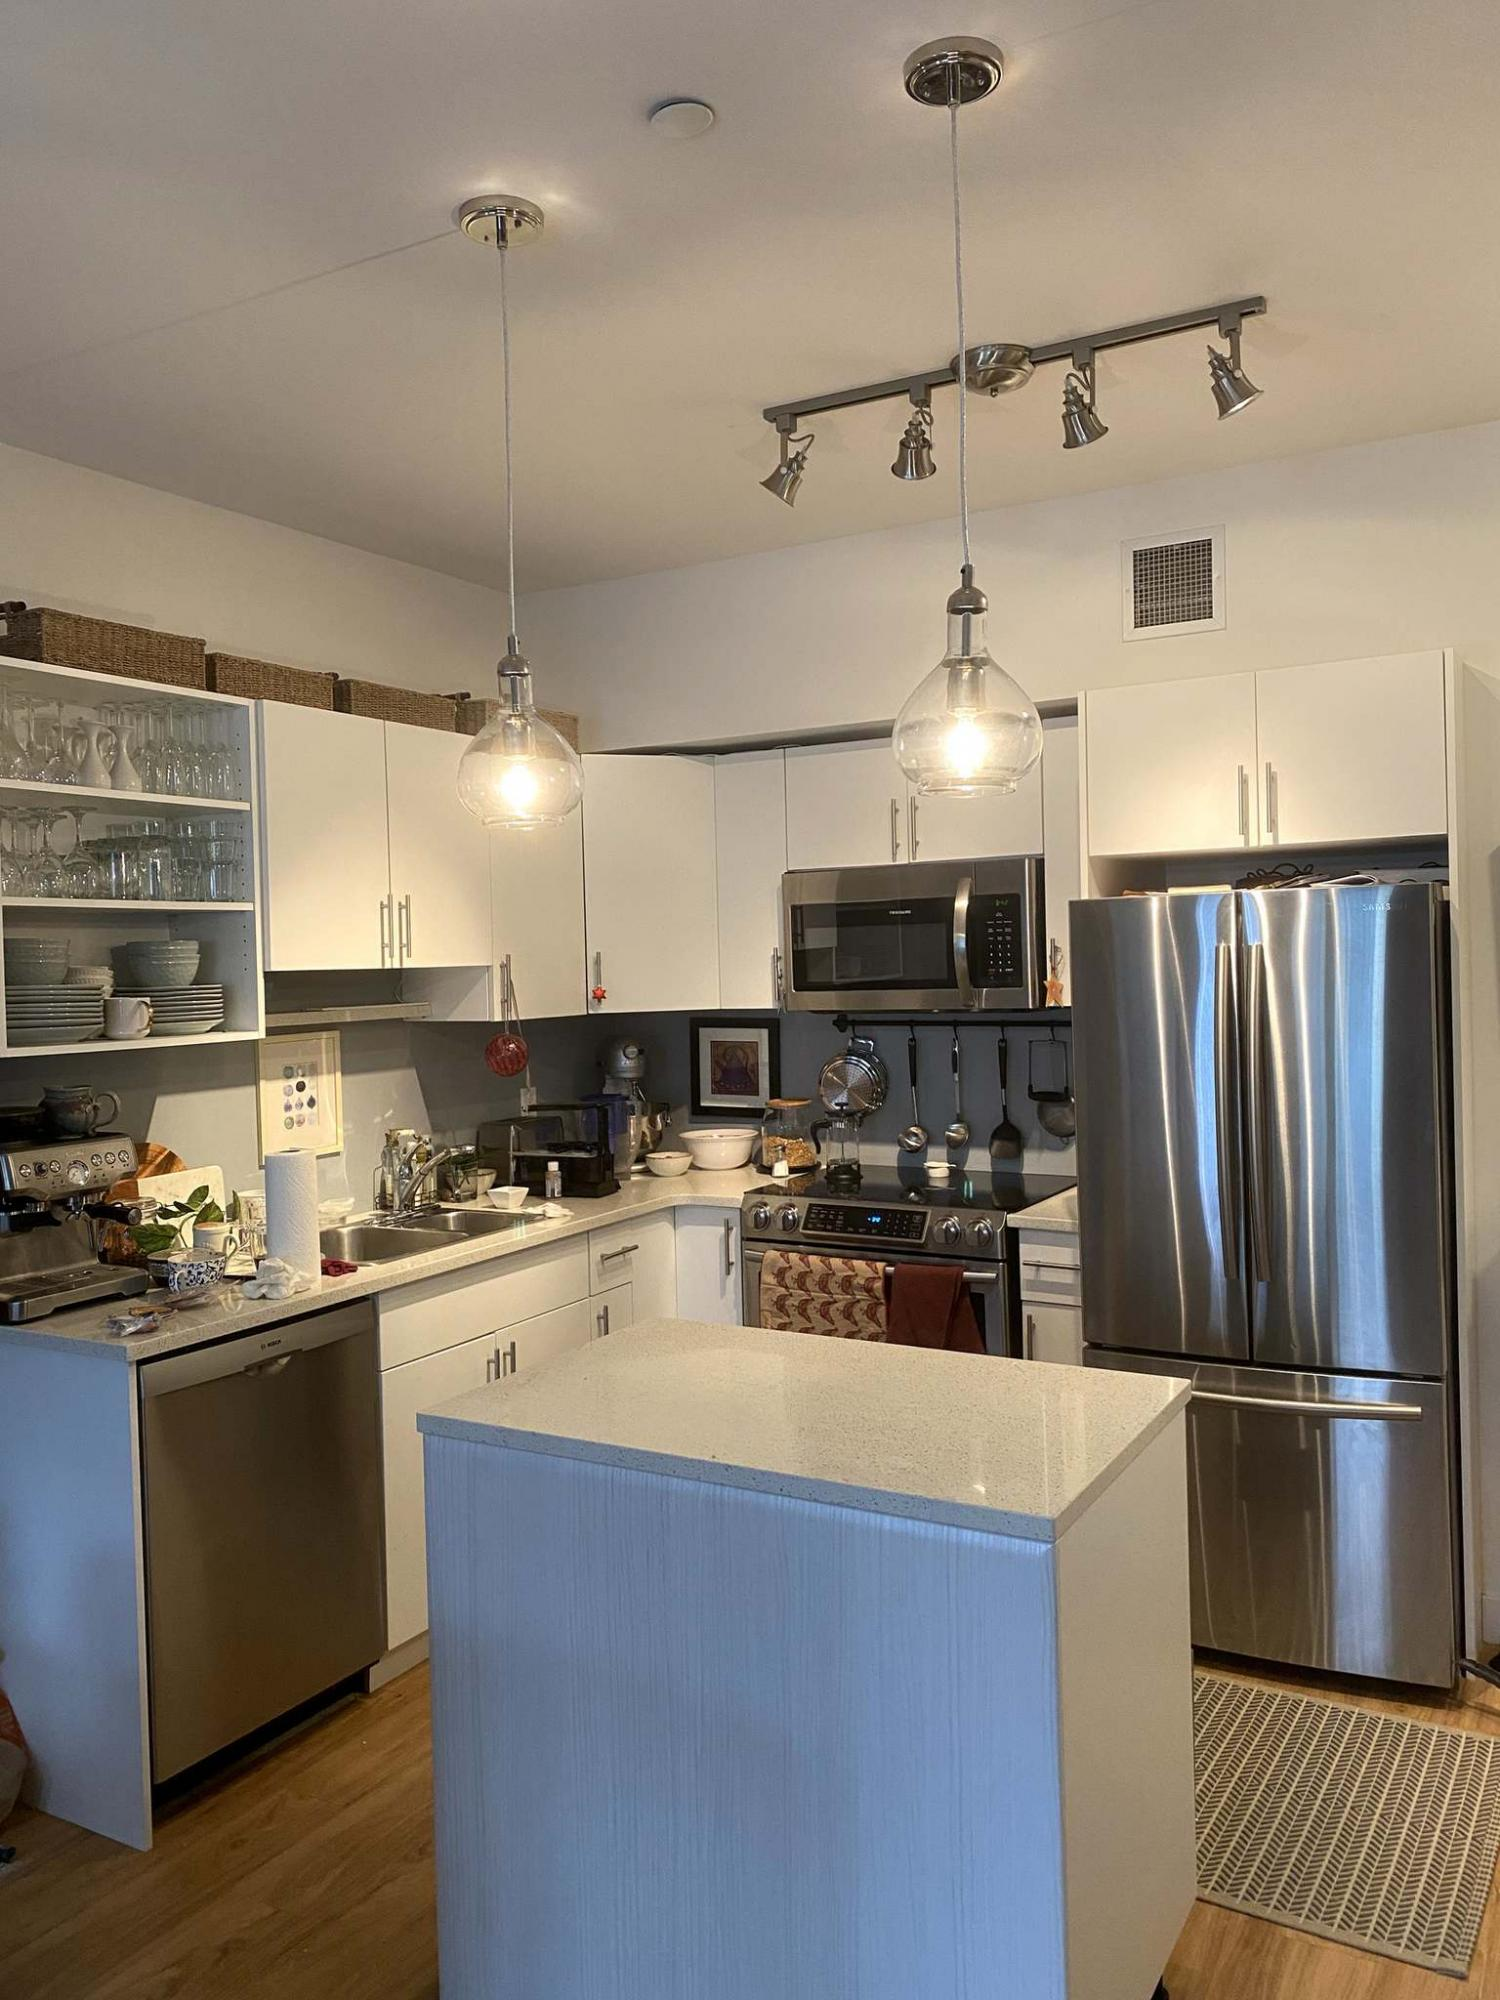 <p>Photos by Marc LaBossiere / Winnipeg Free Press</p><p>A decorative track light replaced an old kitchen fixture, while two fish-bowl pendants were introduced above the island.</p>